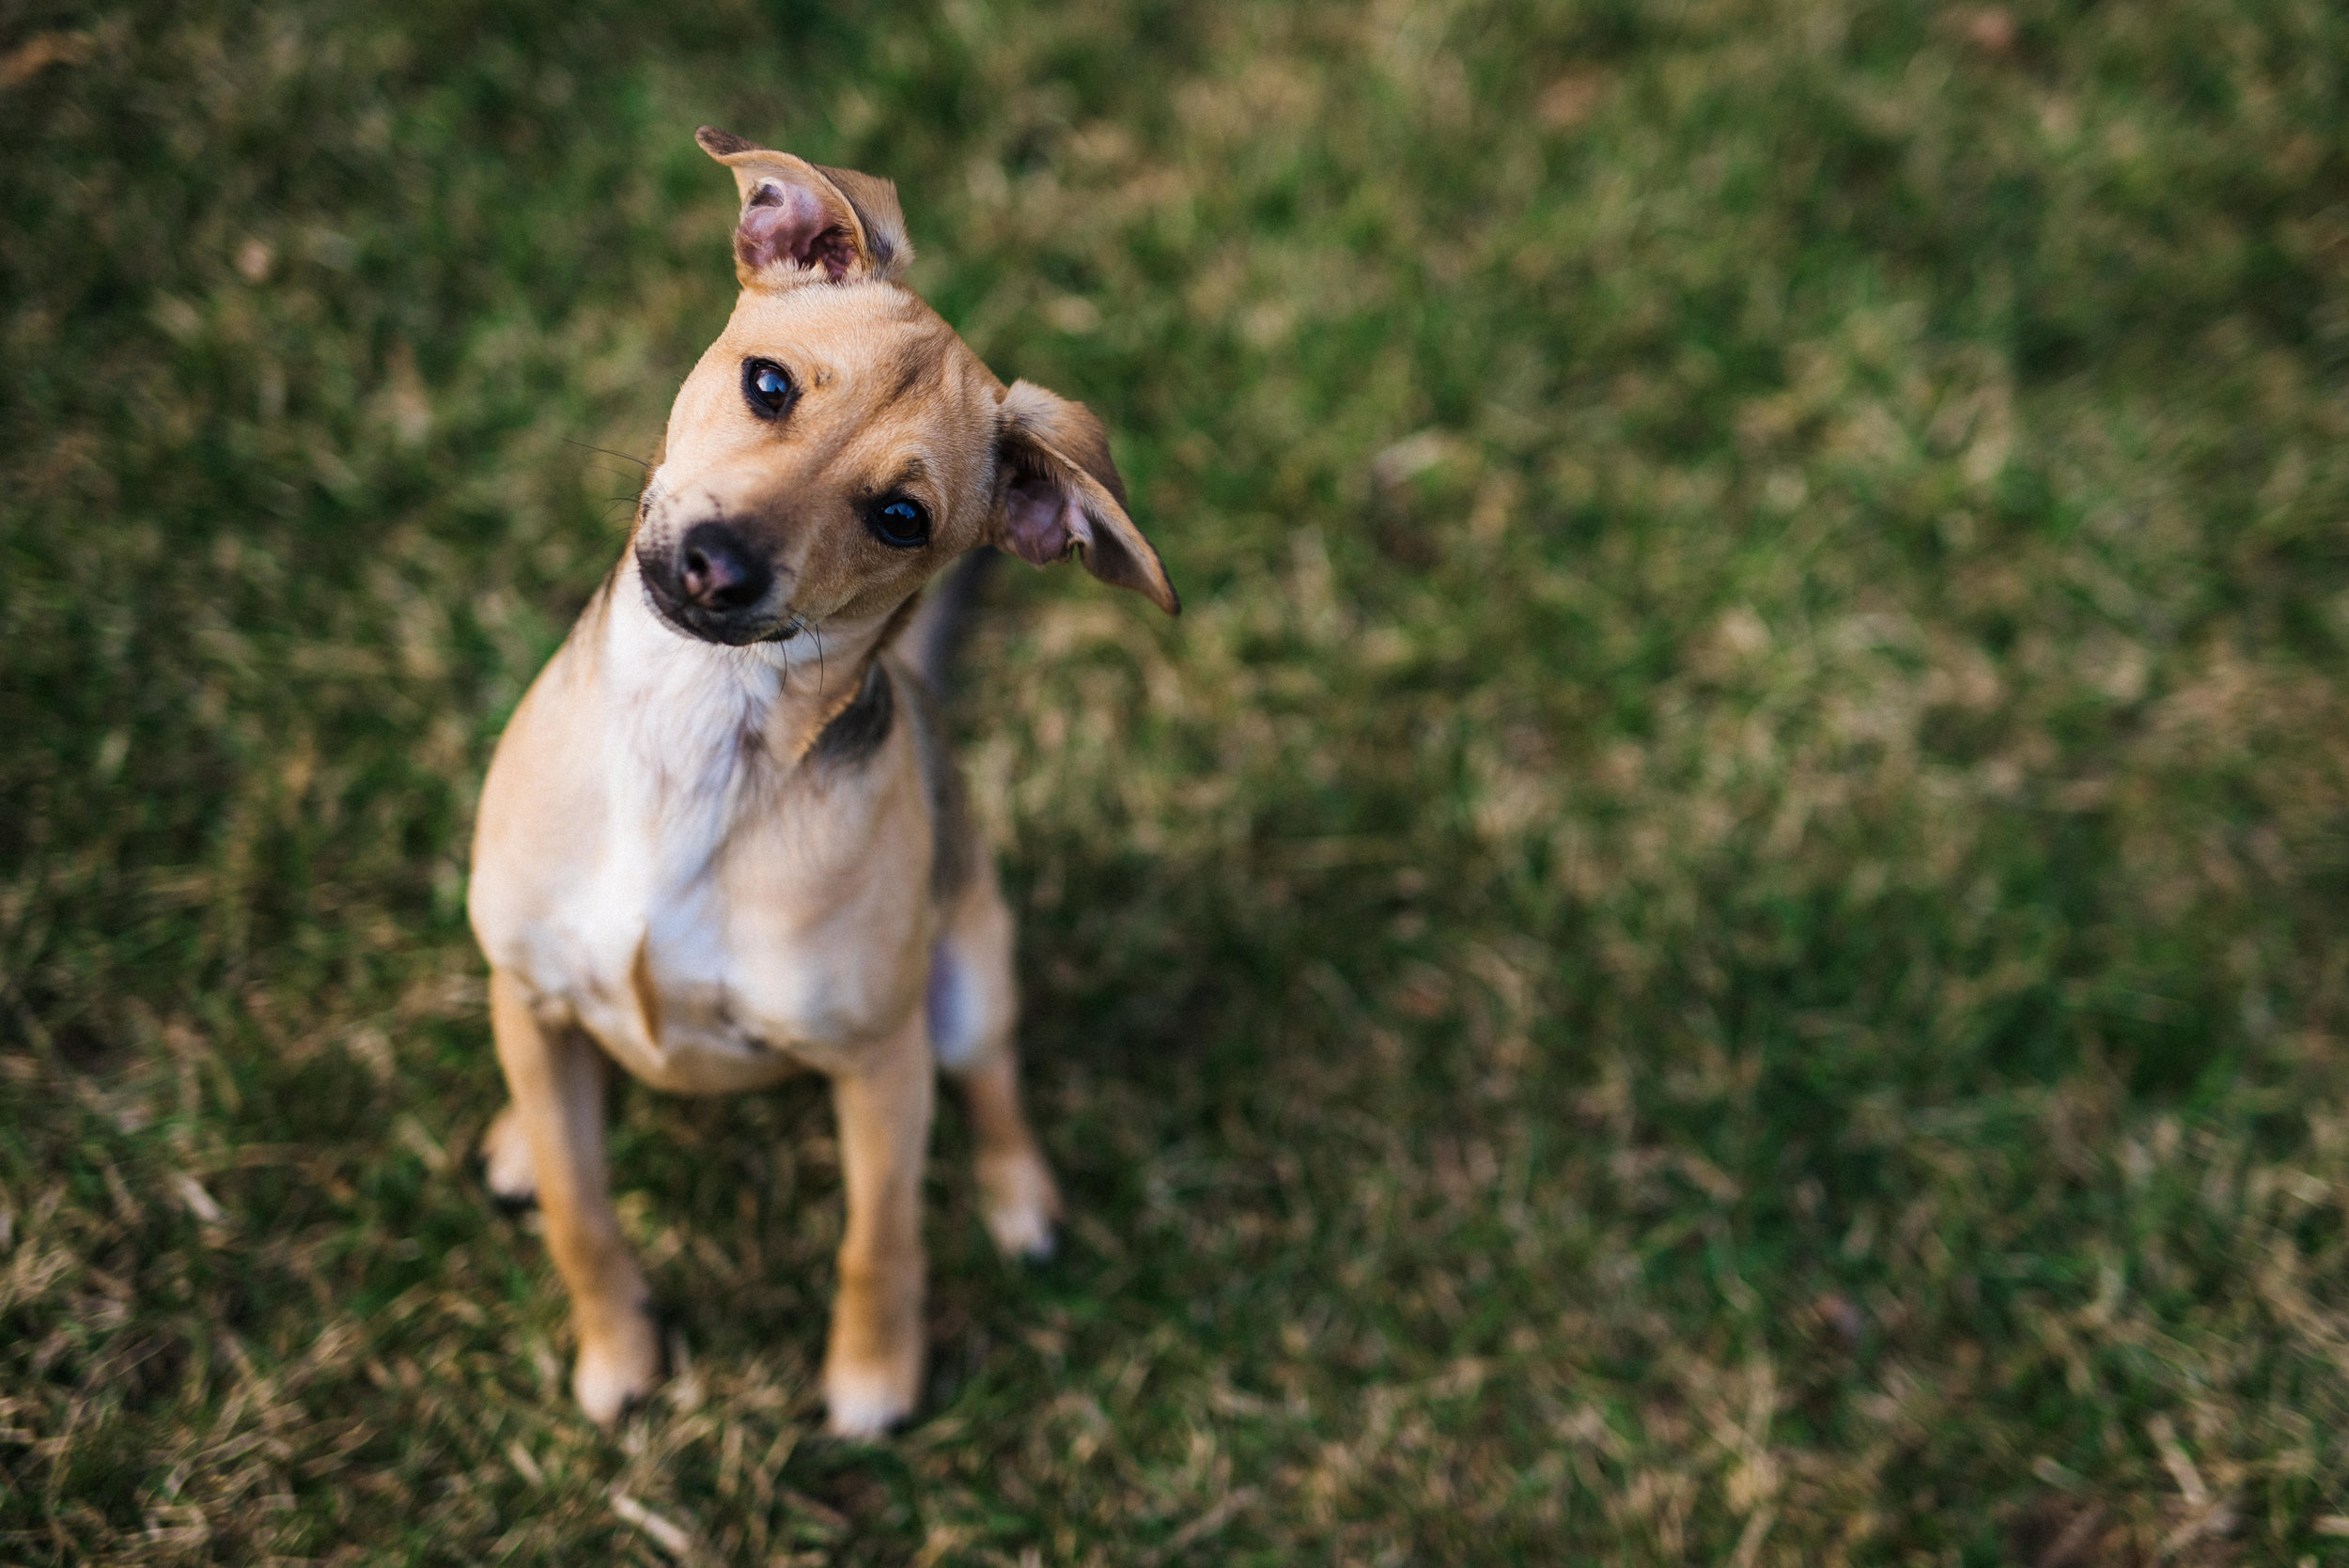 terrier mix puppy with curious expression.jpg